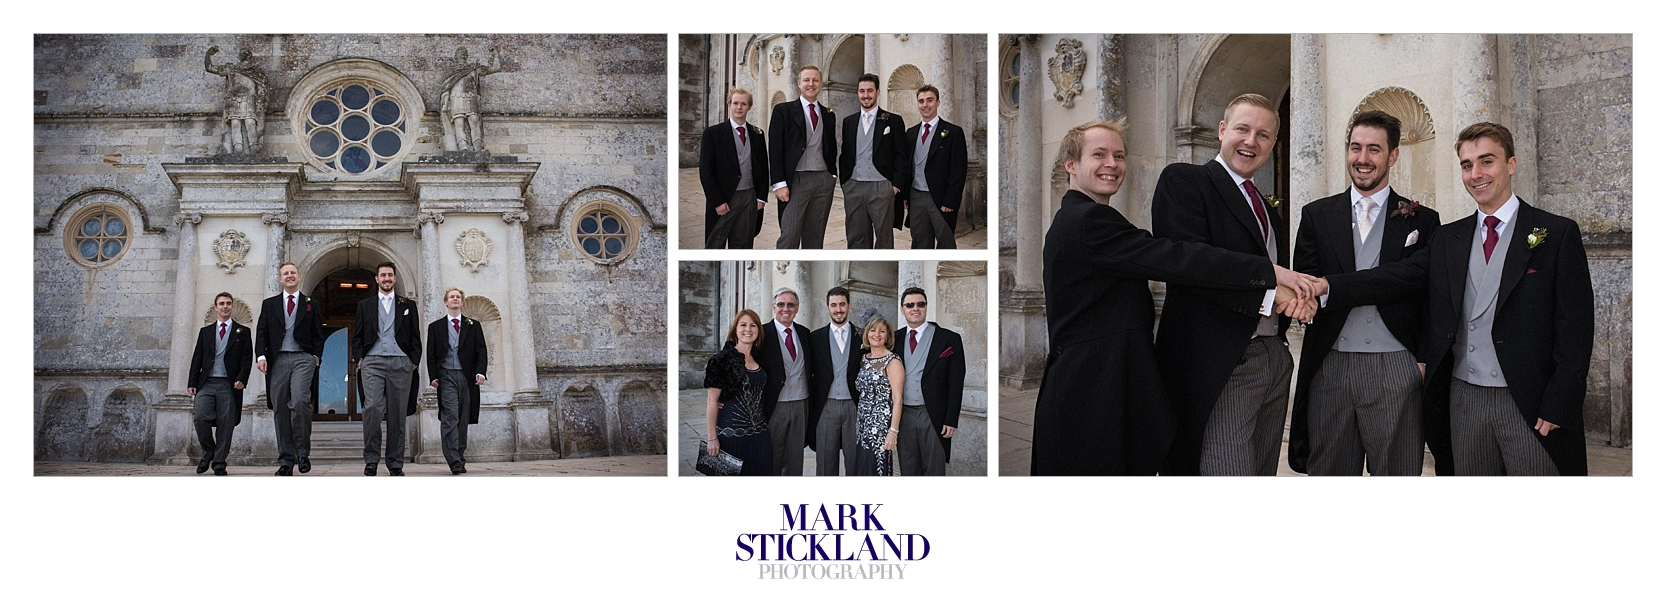 lulworth_castle_wedding_dorset_mark stickland photography.04